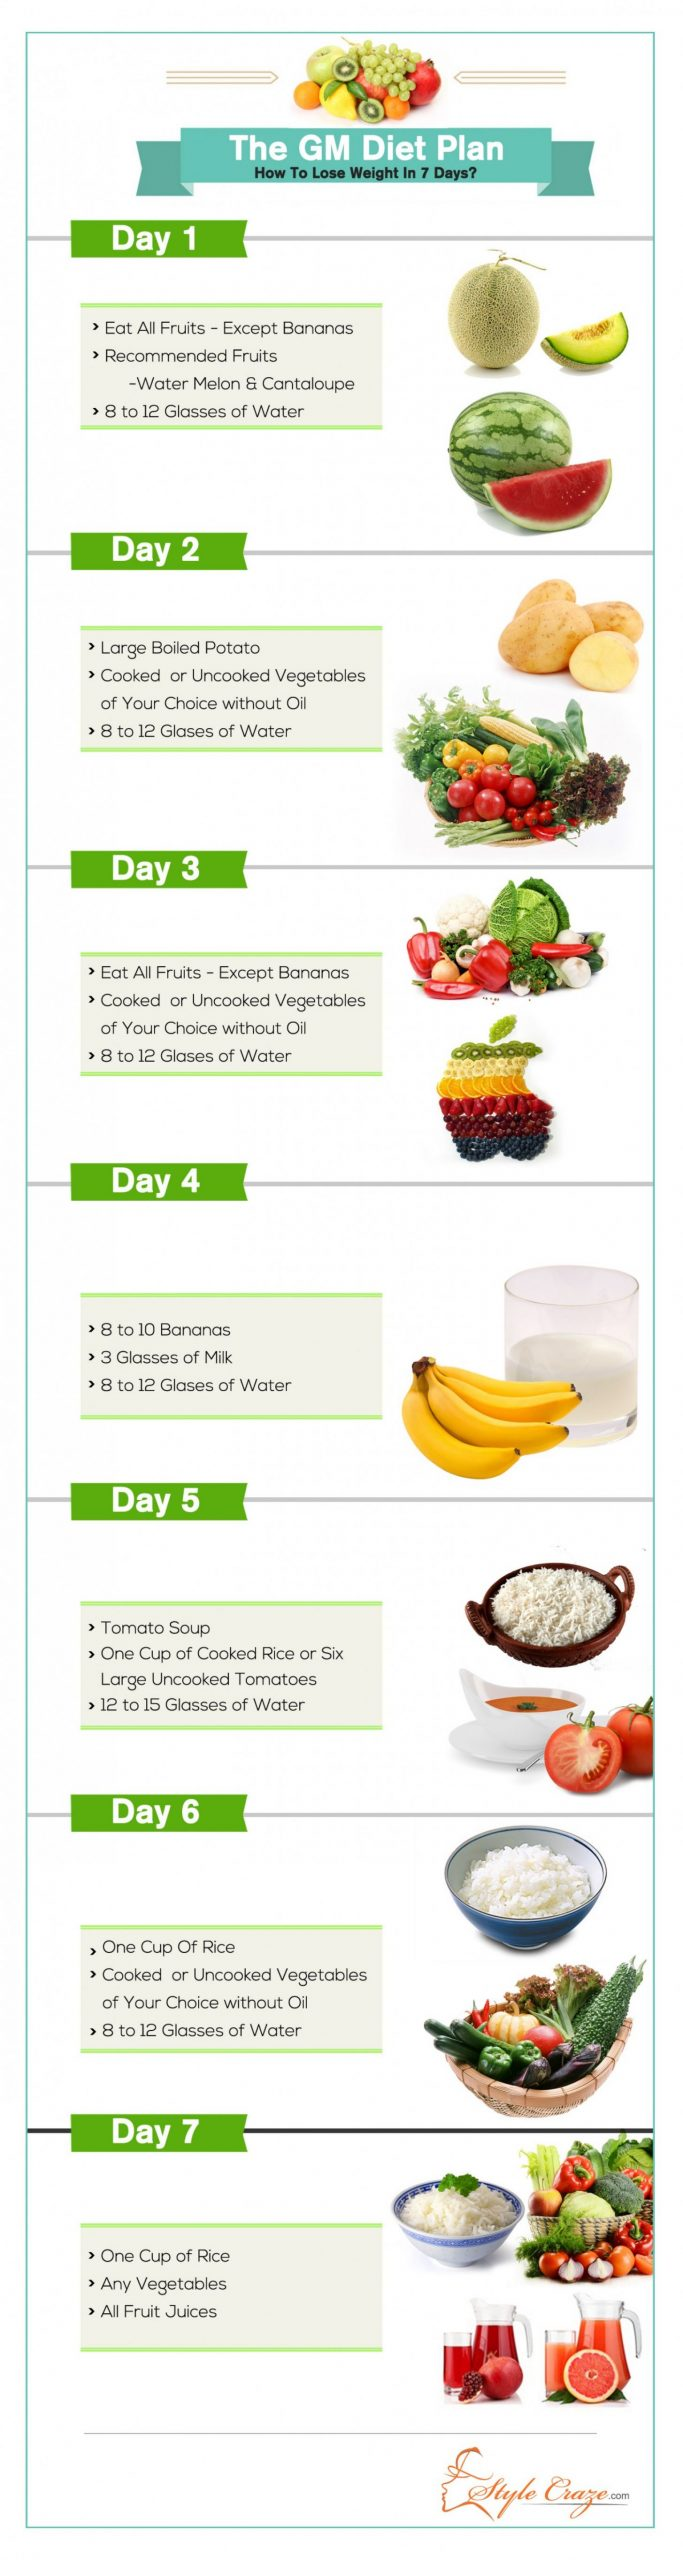 gm diet plan chart pdf - Mayota